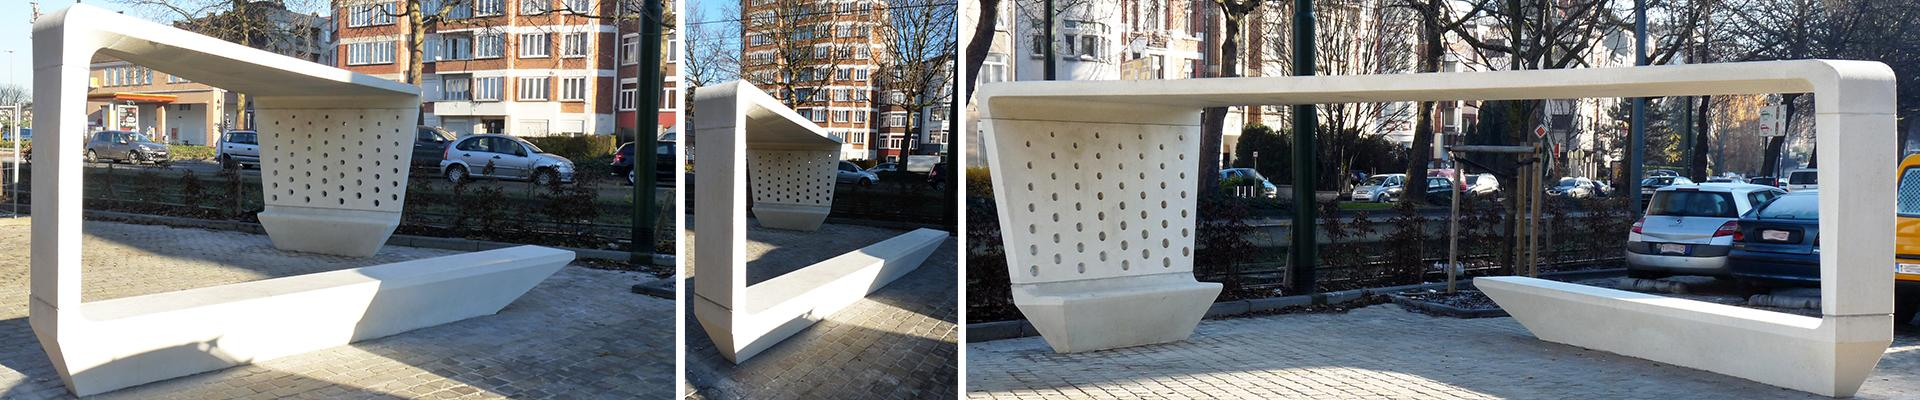 Covered concrete bench, Schaerbeek, Brussels